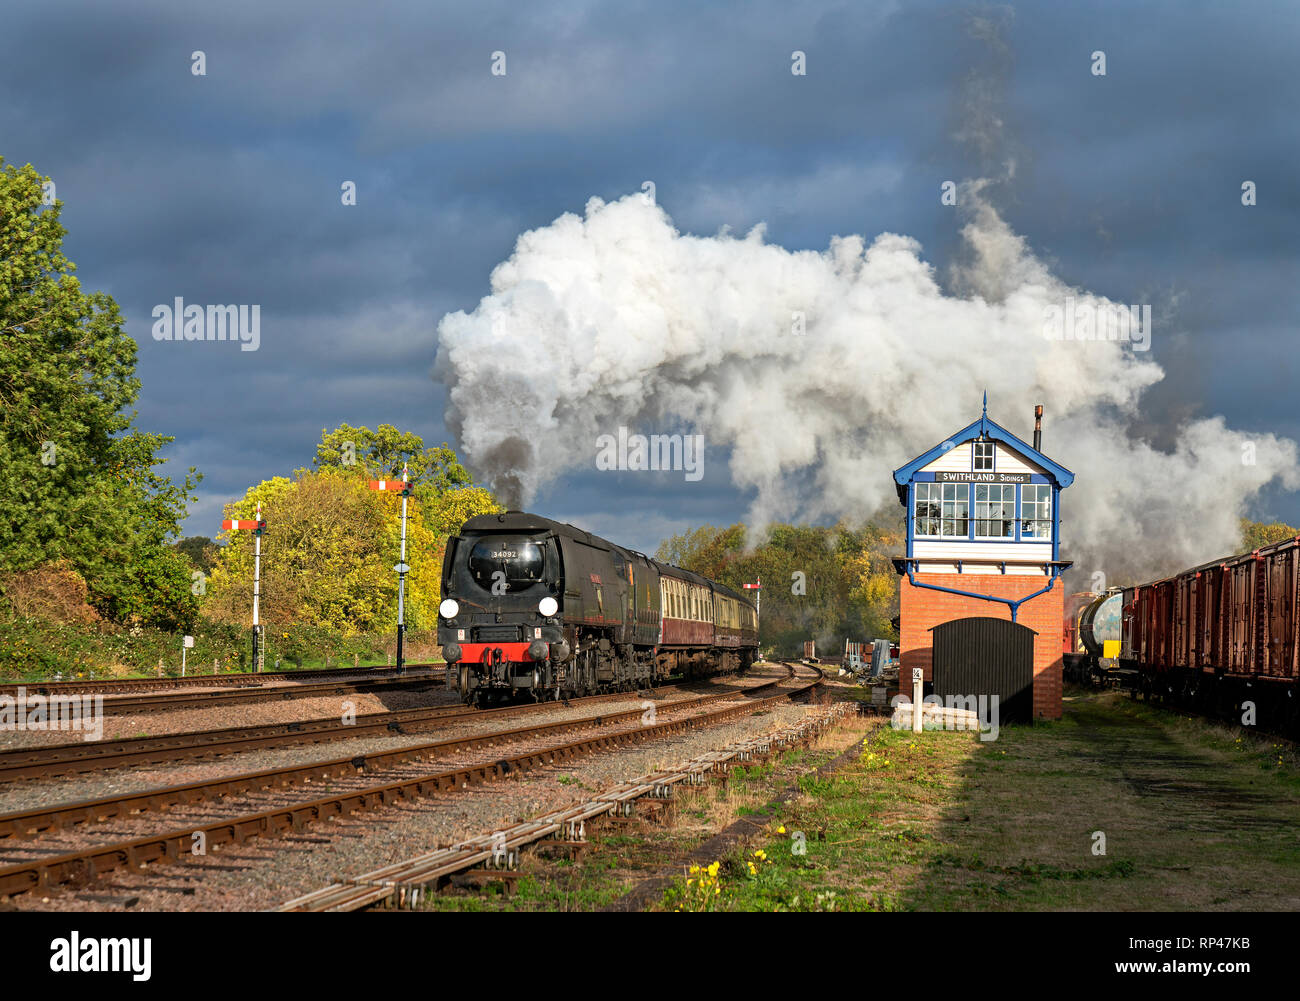 WC-Class Pacific steam locomotive No. 34092 City of Wells passing Swithland Sidings signal box en route from Loughborough to Leicester on the Great Ce - Stock Image